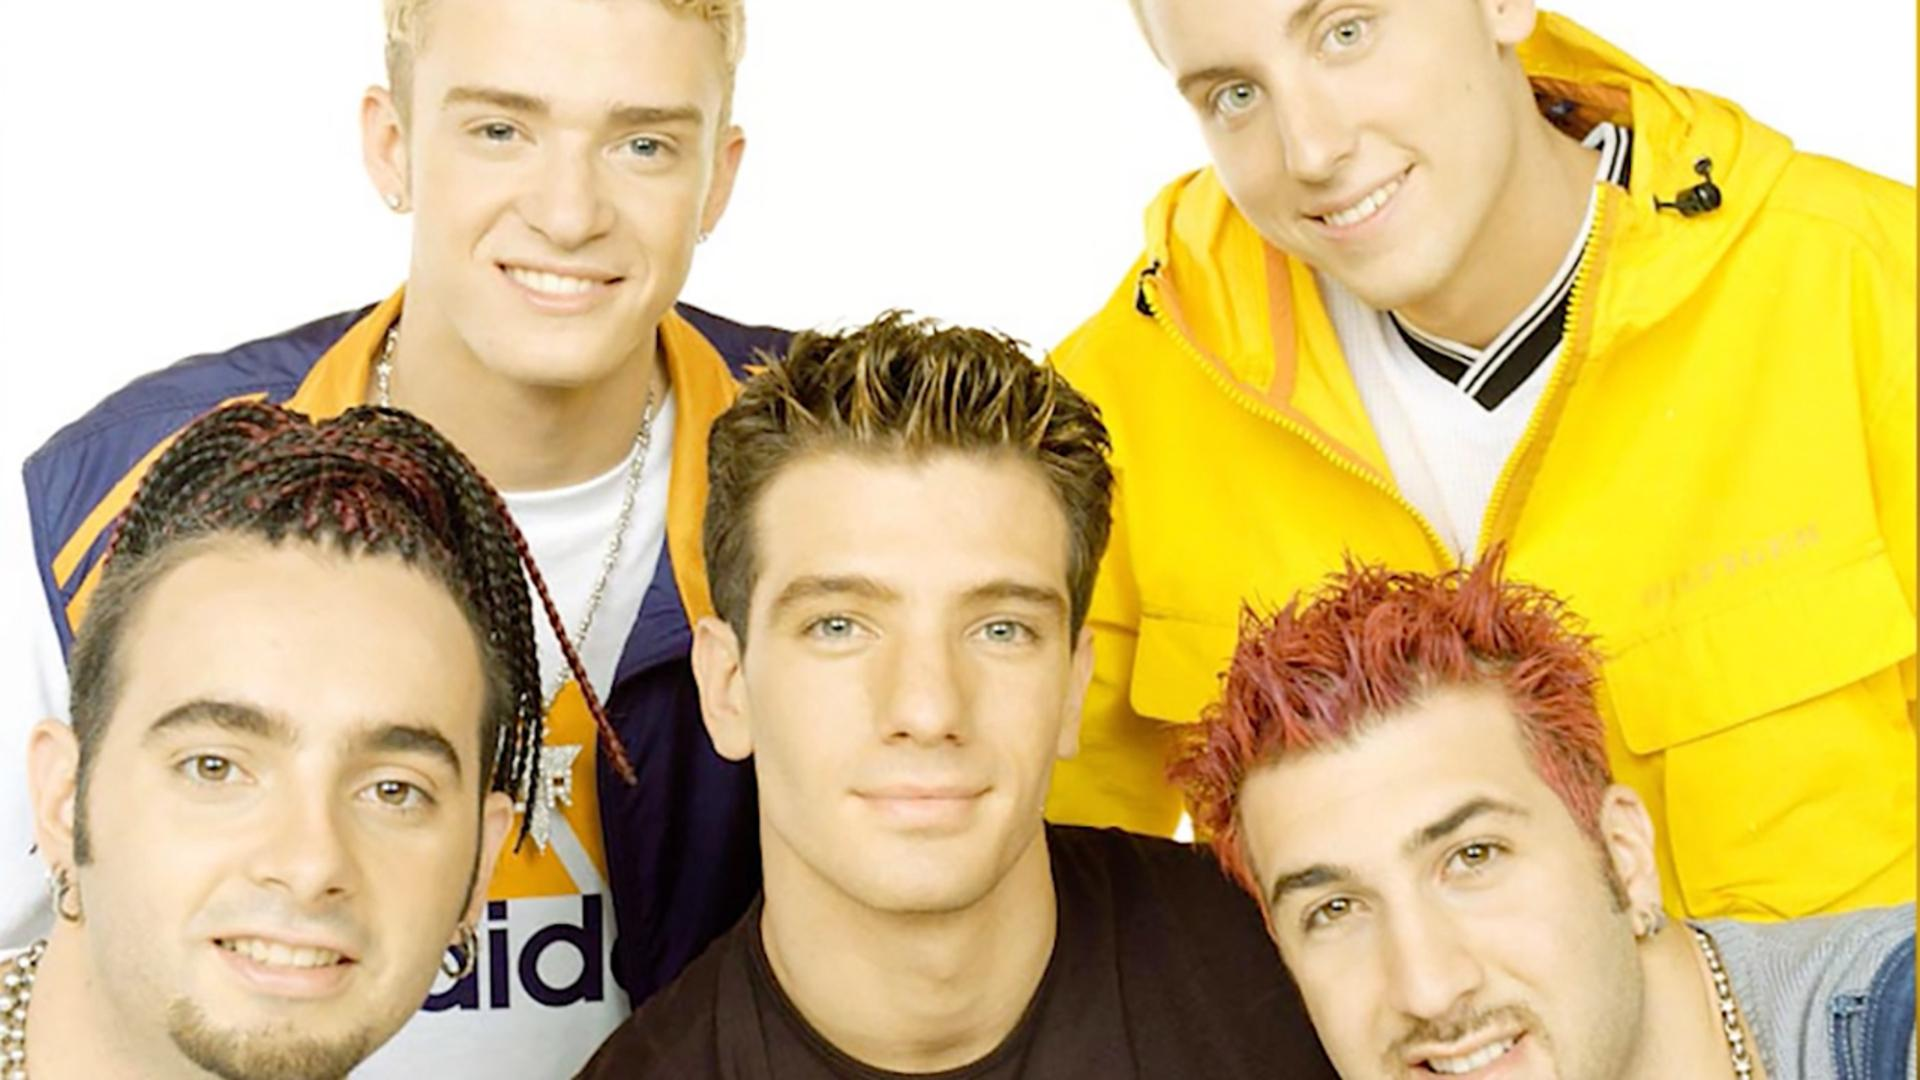 A Full *NSYNC Reunion is Definitely Happening! Find Out When and Where